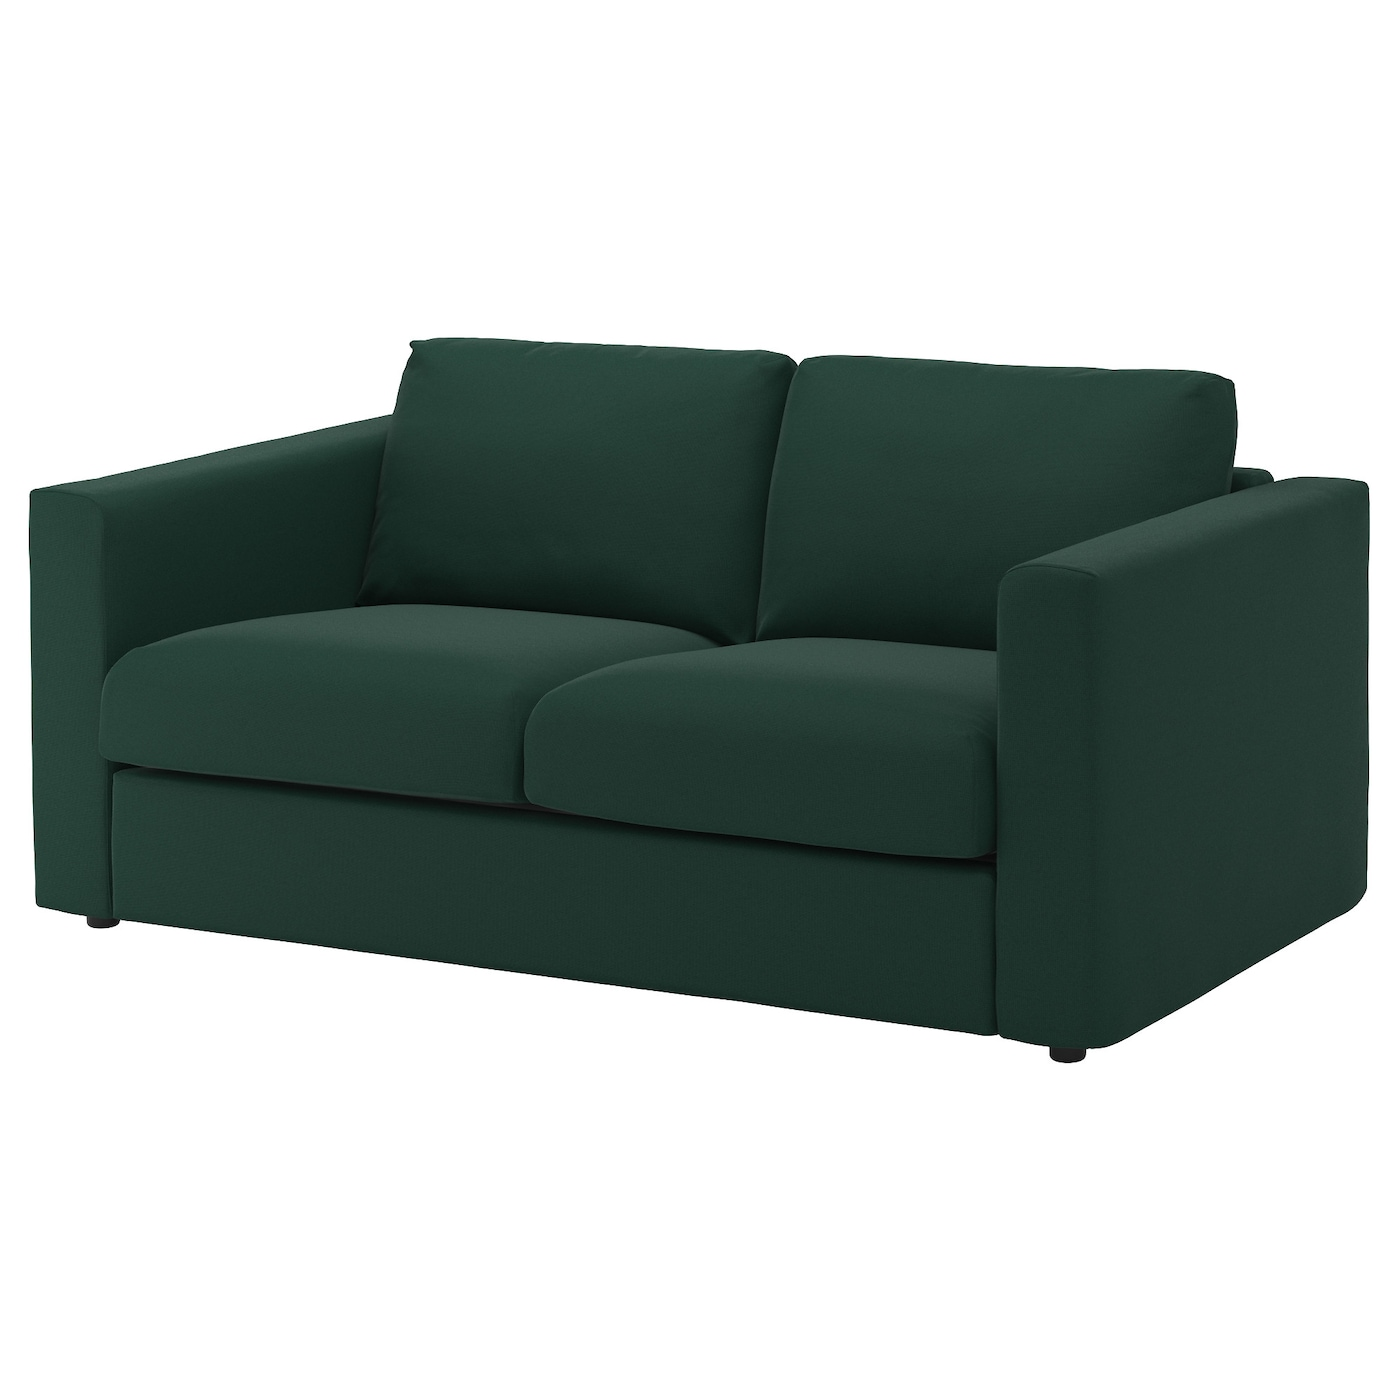 vimle cover for 2 seat sofa gunnared dark green ikea